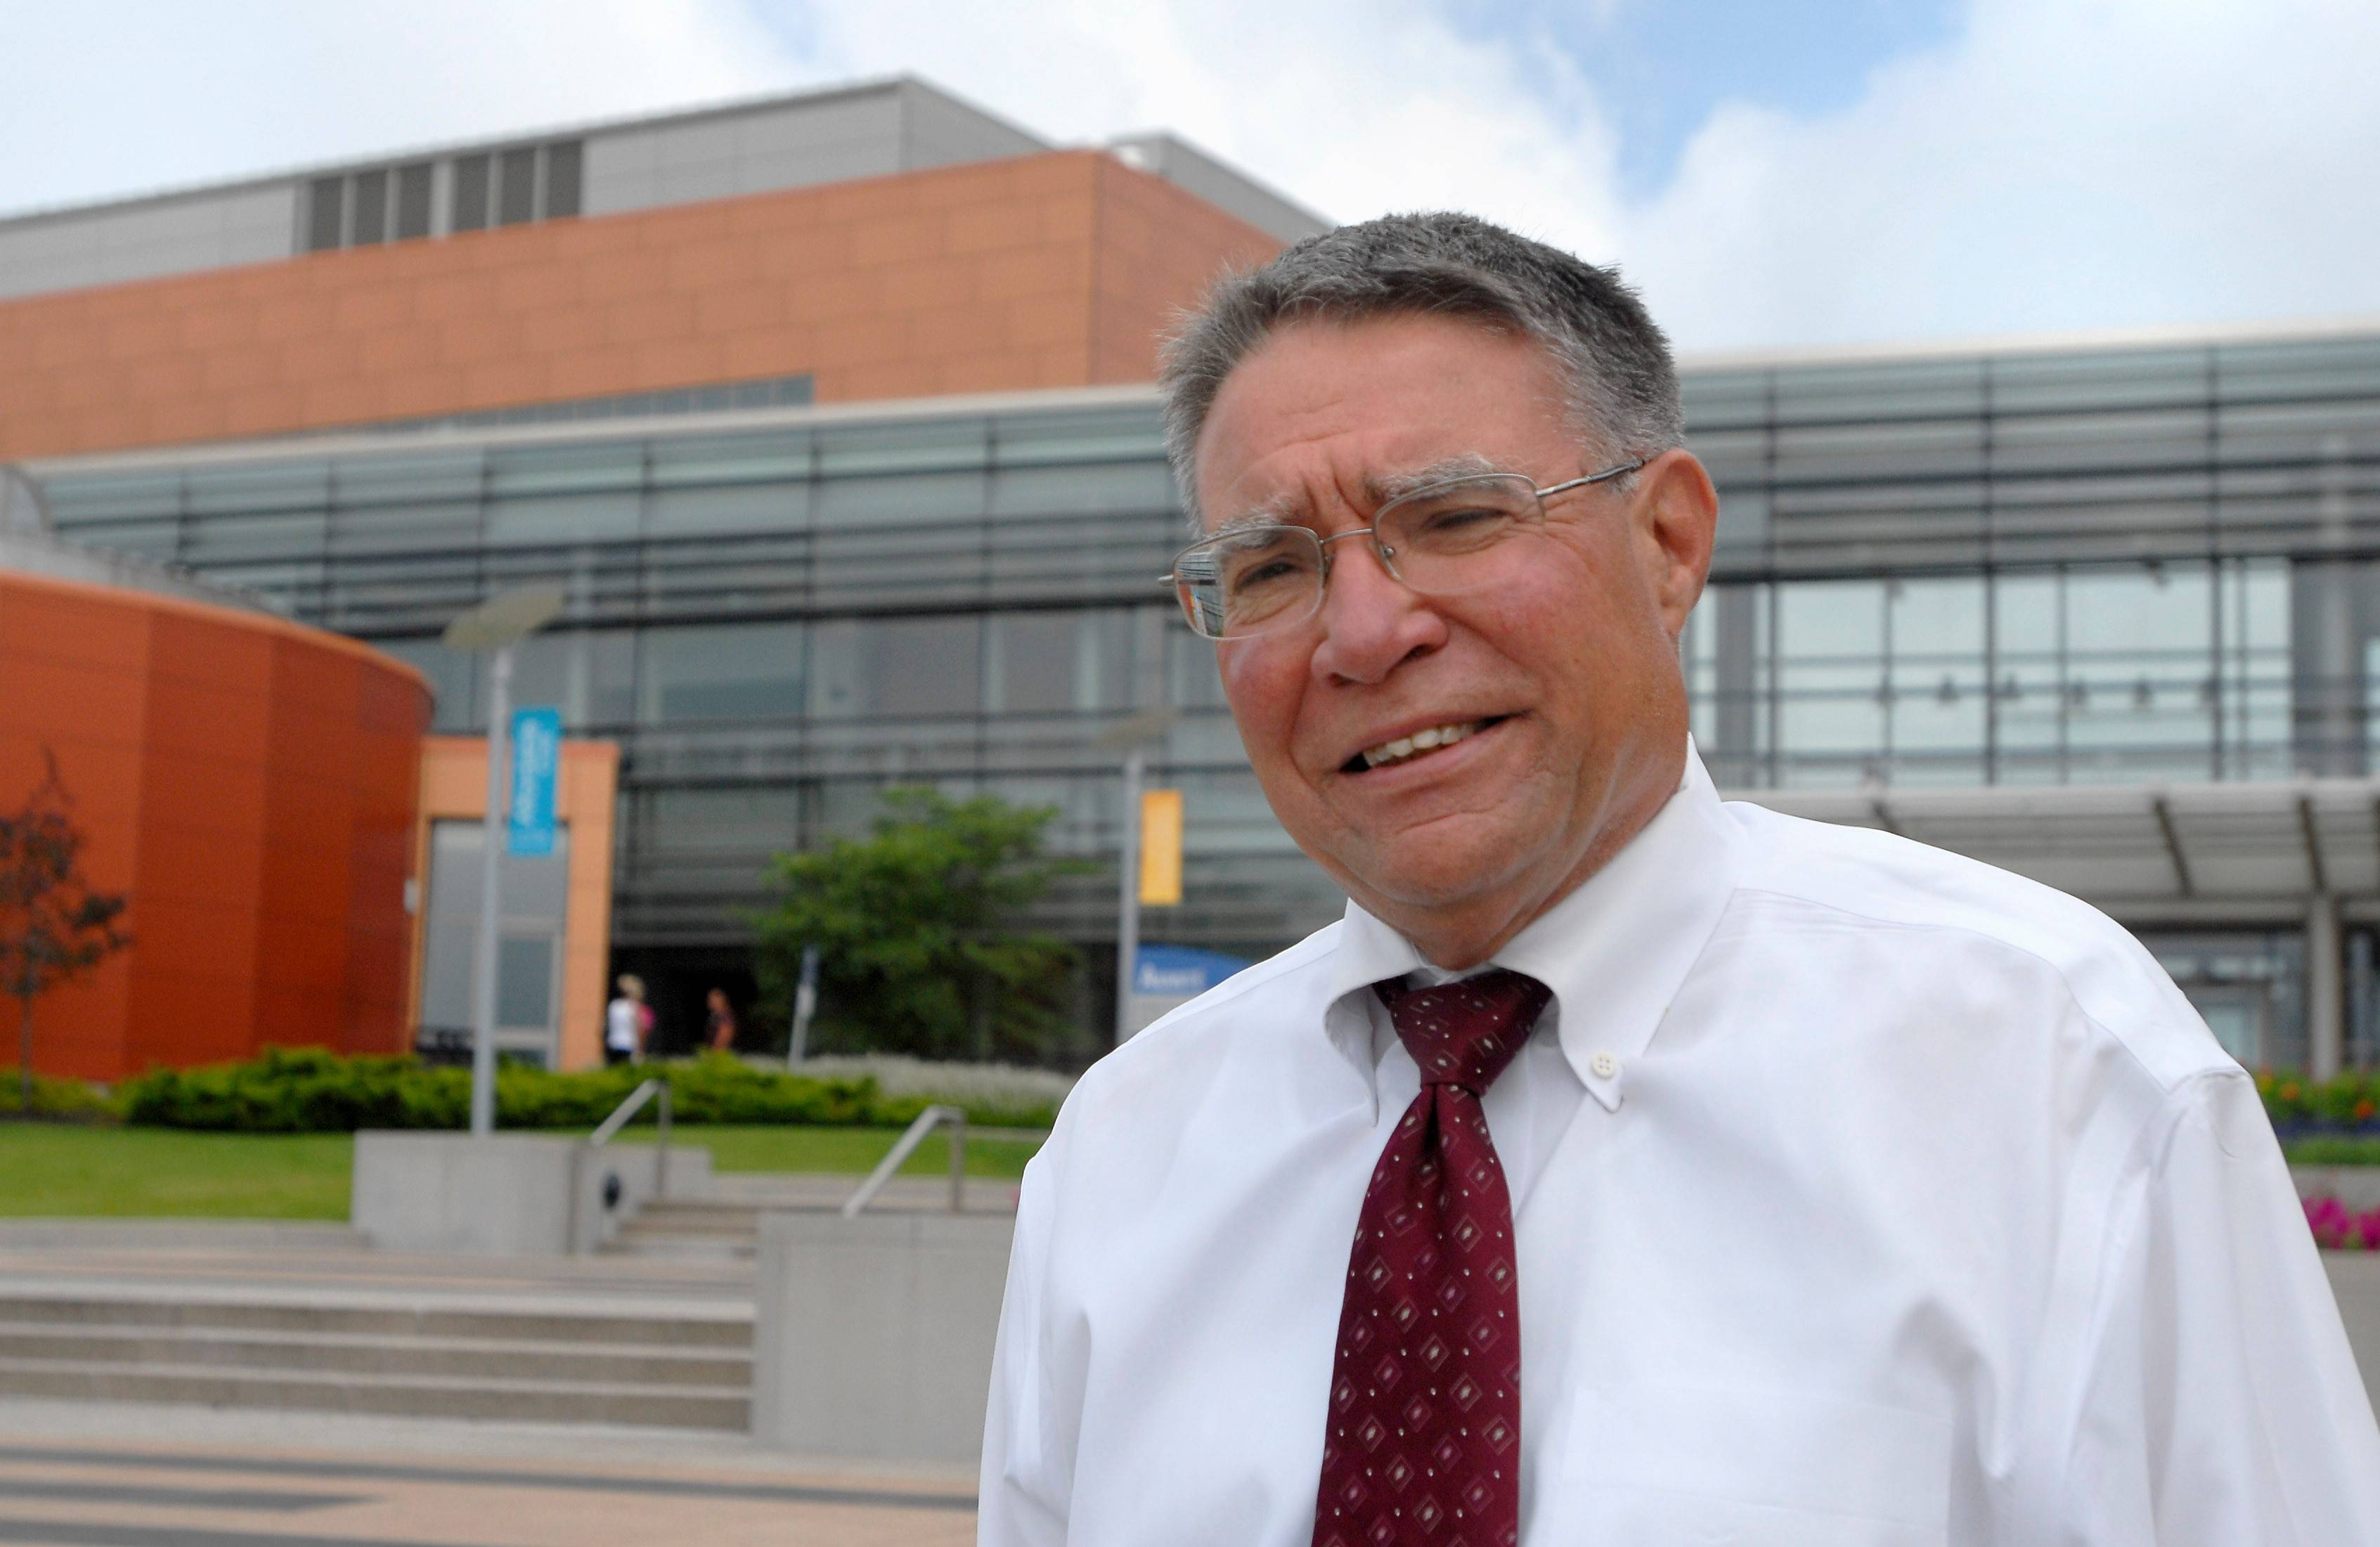 Harper College President Ken Ender has a five-year contract, common among suburban community college heads. But College of DuPage trustees last month voided President Robert Breuder's contract, saying it violated an 1892 law stating such pacts could not exceed two years.